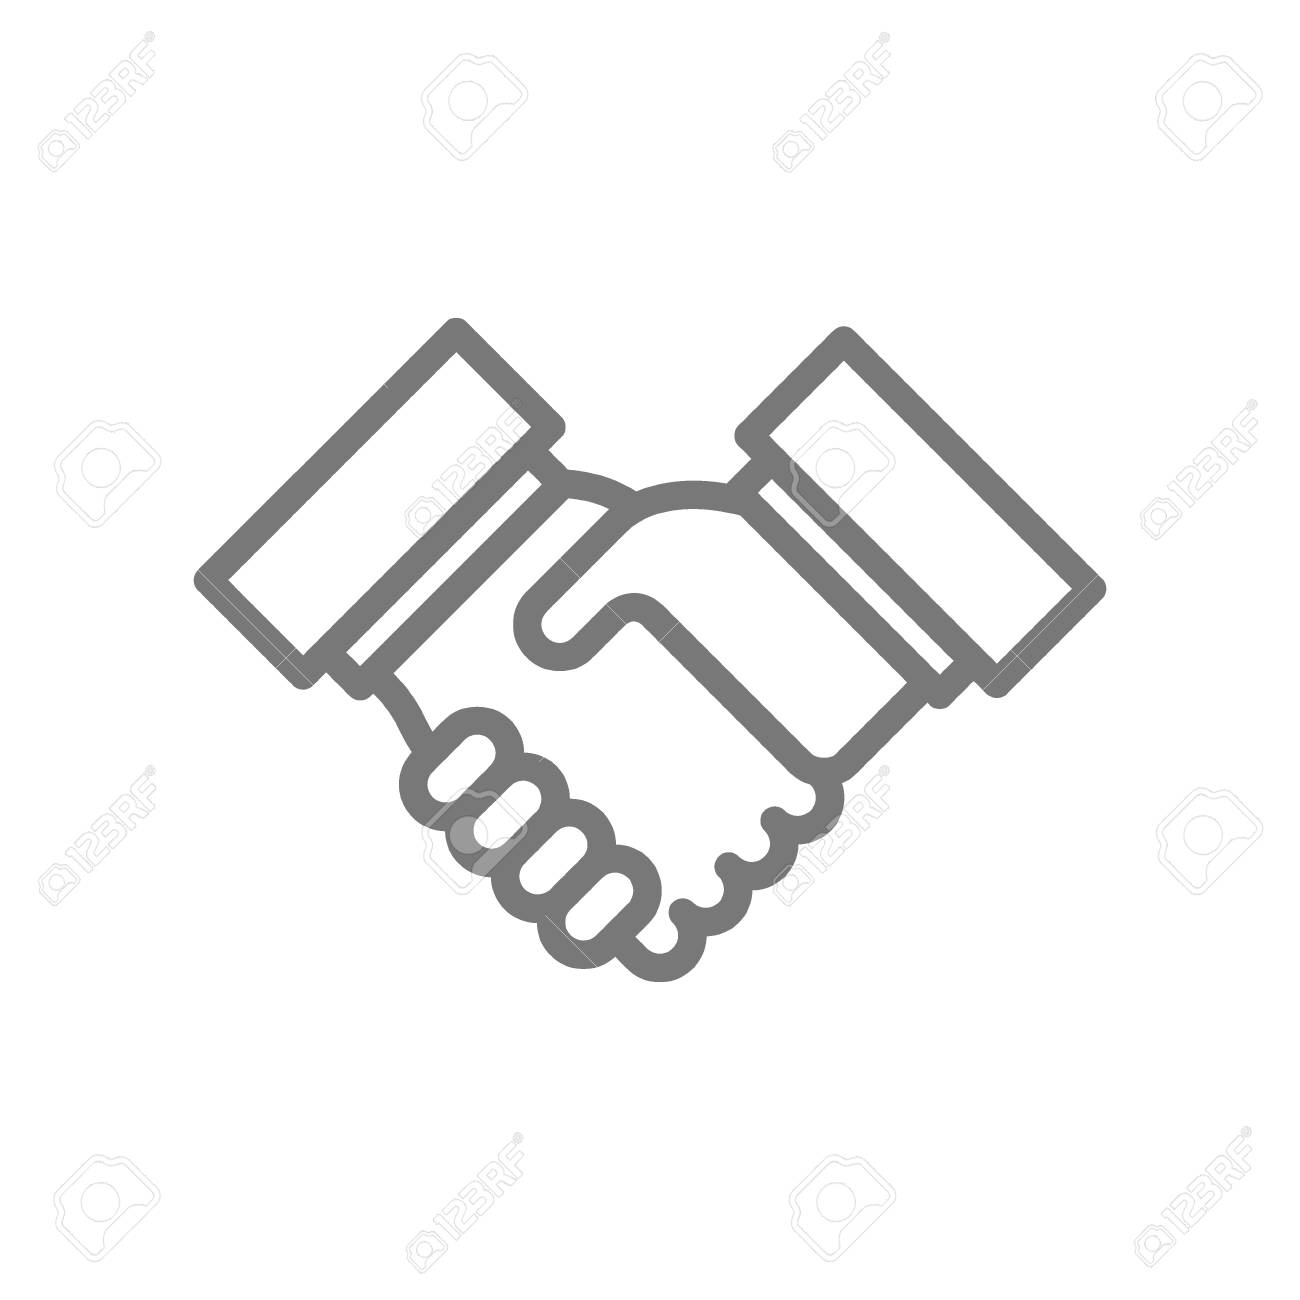 Simple Business Handshake And Contract Agreement Line Icon Symbol